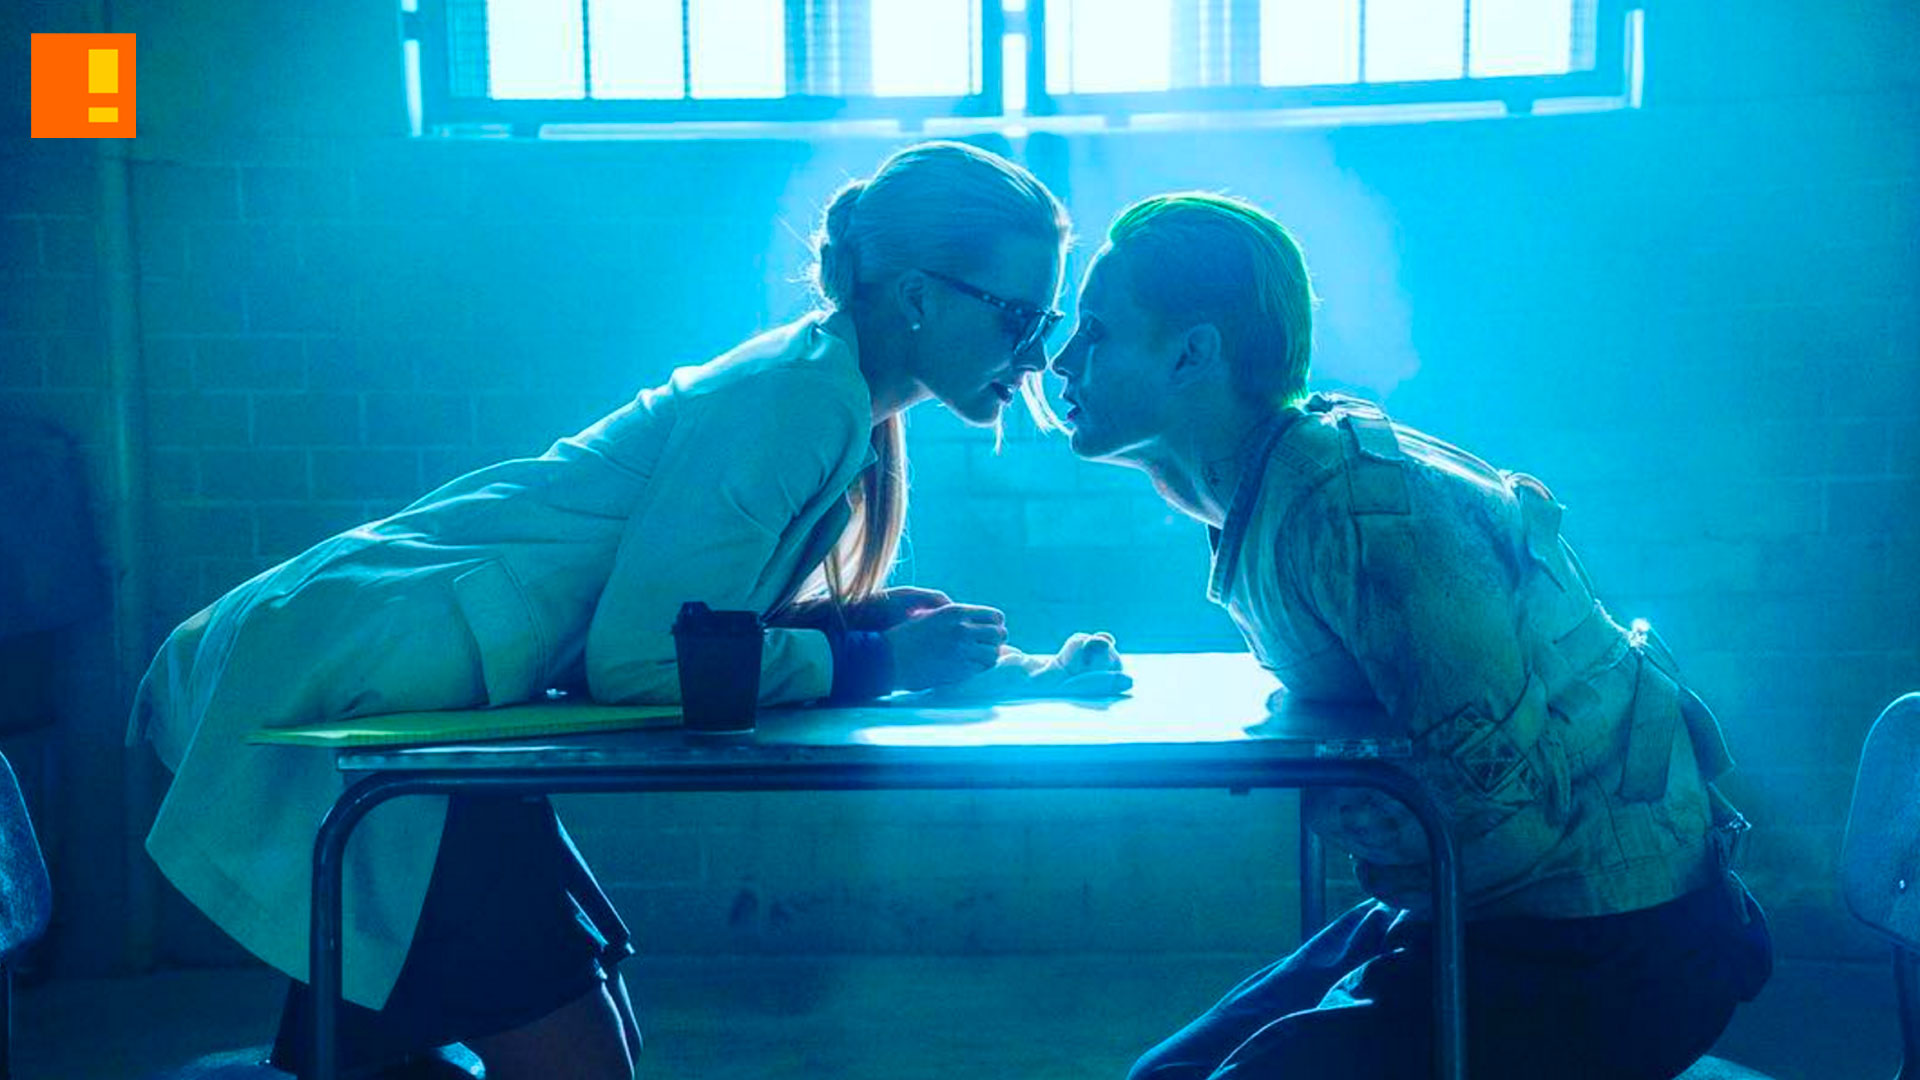 joker, harley, suicide squad, sUICIDE SQUAD , KILLER CROC ,BANNER, suicide squad trailer, suicide squad cast, suicide squad release date, suicide squad joker, suicide squad rating, suicide squad harley quinn, suicide squad trailer 2, suicide squad characters, suicide squad members, suicide squad enchantress, suicide squad movie, suicide squad arrow, suicide squad animated movie, suicide squad actors, suicide squad action figures, suicide squad assault on arkham, suicide squad art, suicide squad actress, suicide squad antagonist, is joker a suicide squad member, suicide squad batman, suicide squad bohemian rhapsody, suicide squad boomerang, suicide squad backstory, suicide squad bad guys, suicide squad bronze tiger,SUICIDE SQUAD, dc comics, warner bros., margot robbie, will smith,SUICIDE SQUAD, dc comics, warner bros., margot robbie, will smith, suicide squad,joker, harley quinn, margot robbie, will smith, jared leto, dc comics, warner bros. pictures, poster, poster art, entertainment on tap, the action pixel, JARED LETO, BOOMERANG, deadshot, sdcc , comic con, san diego comic con,